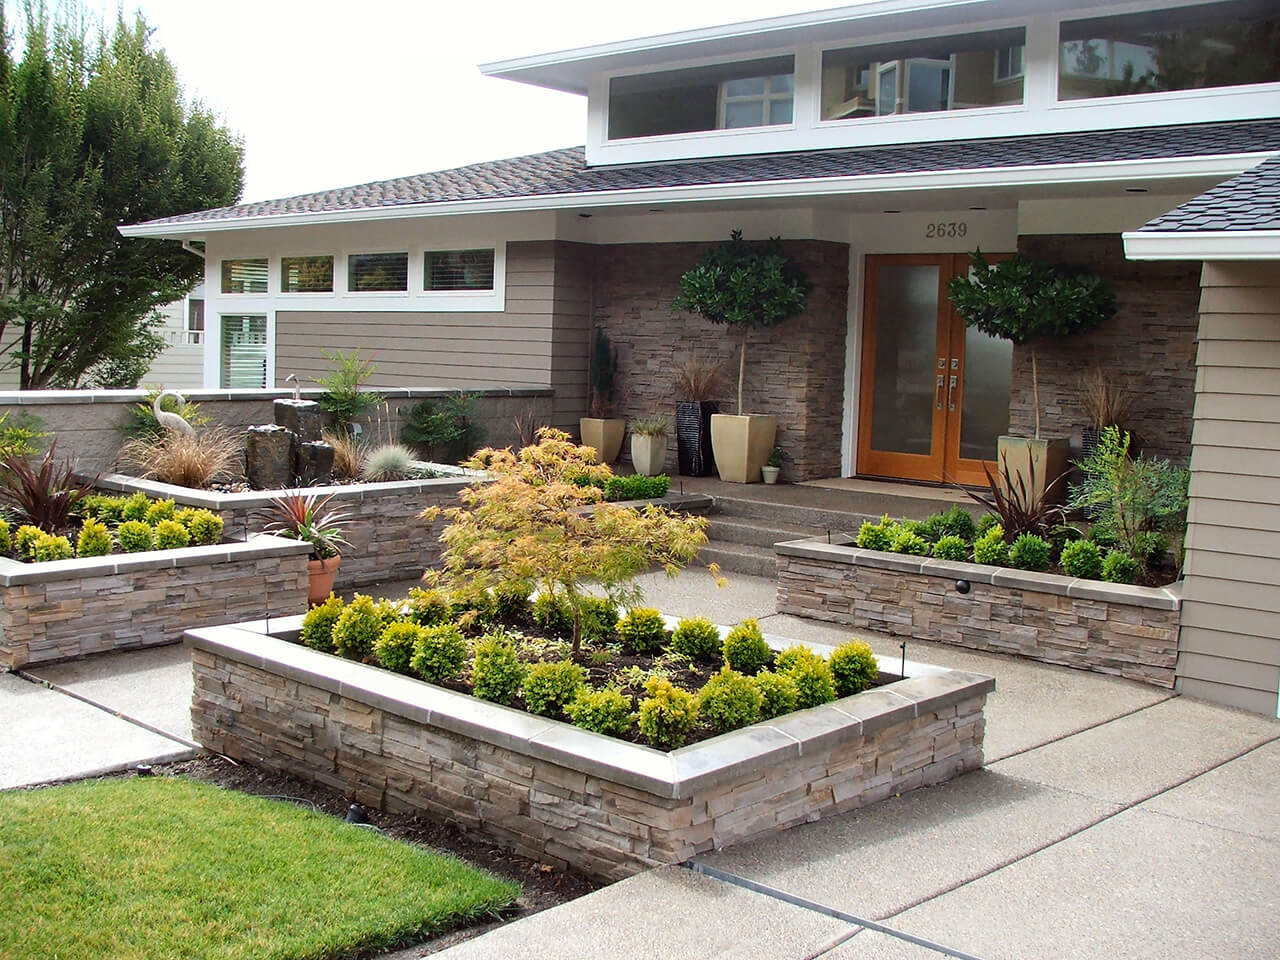 20 brilliant front garden landscaping ideas style motivation for Front garden design ideas uk